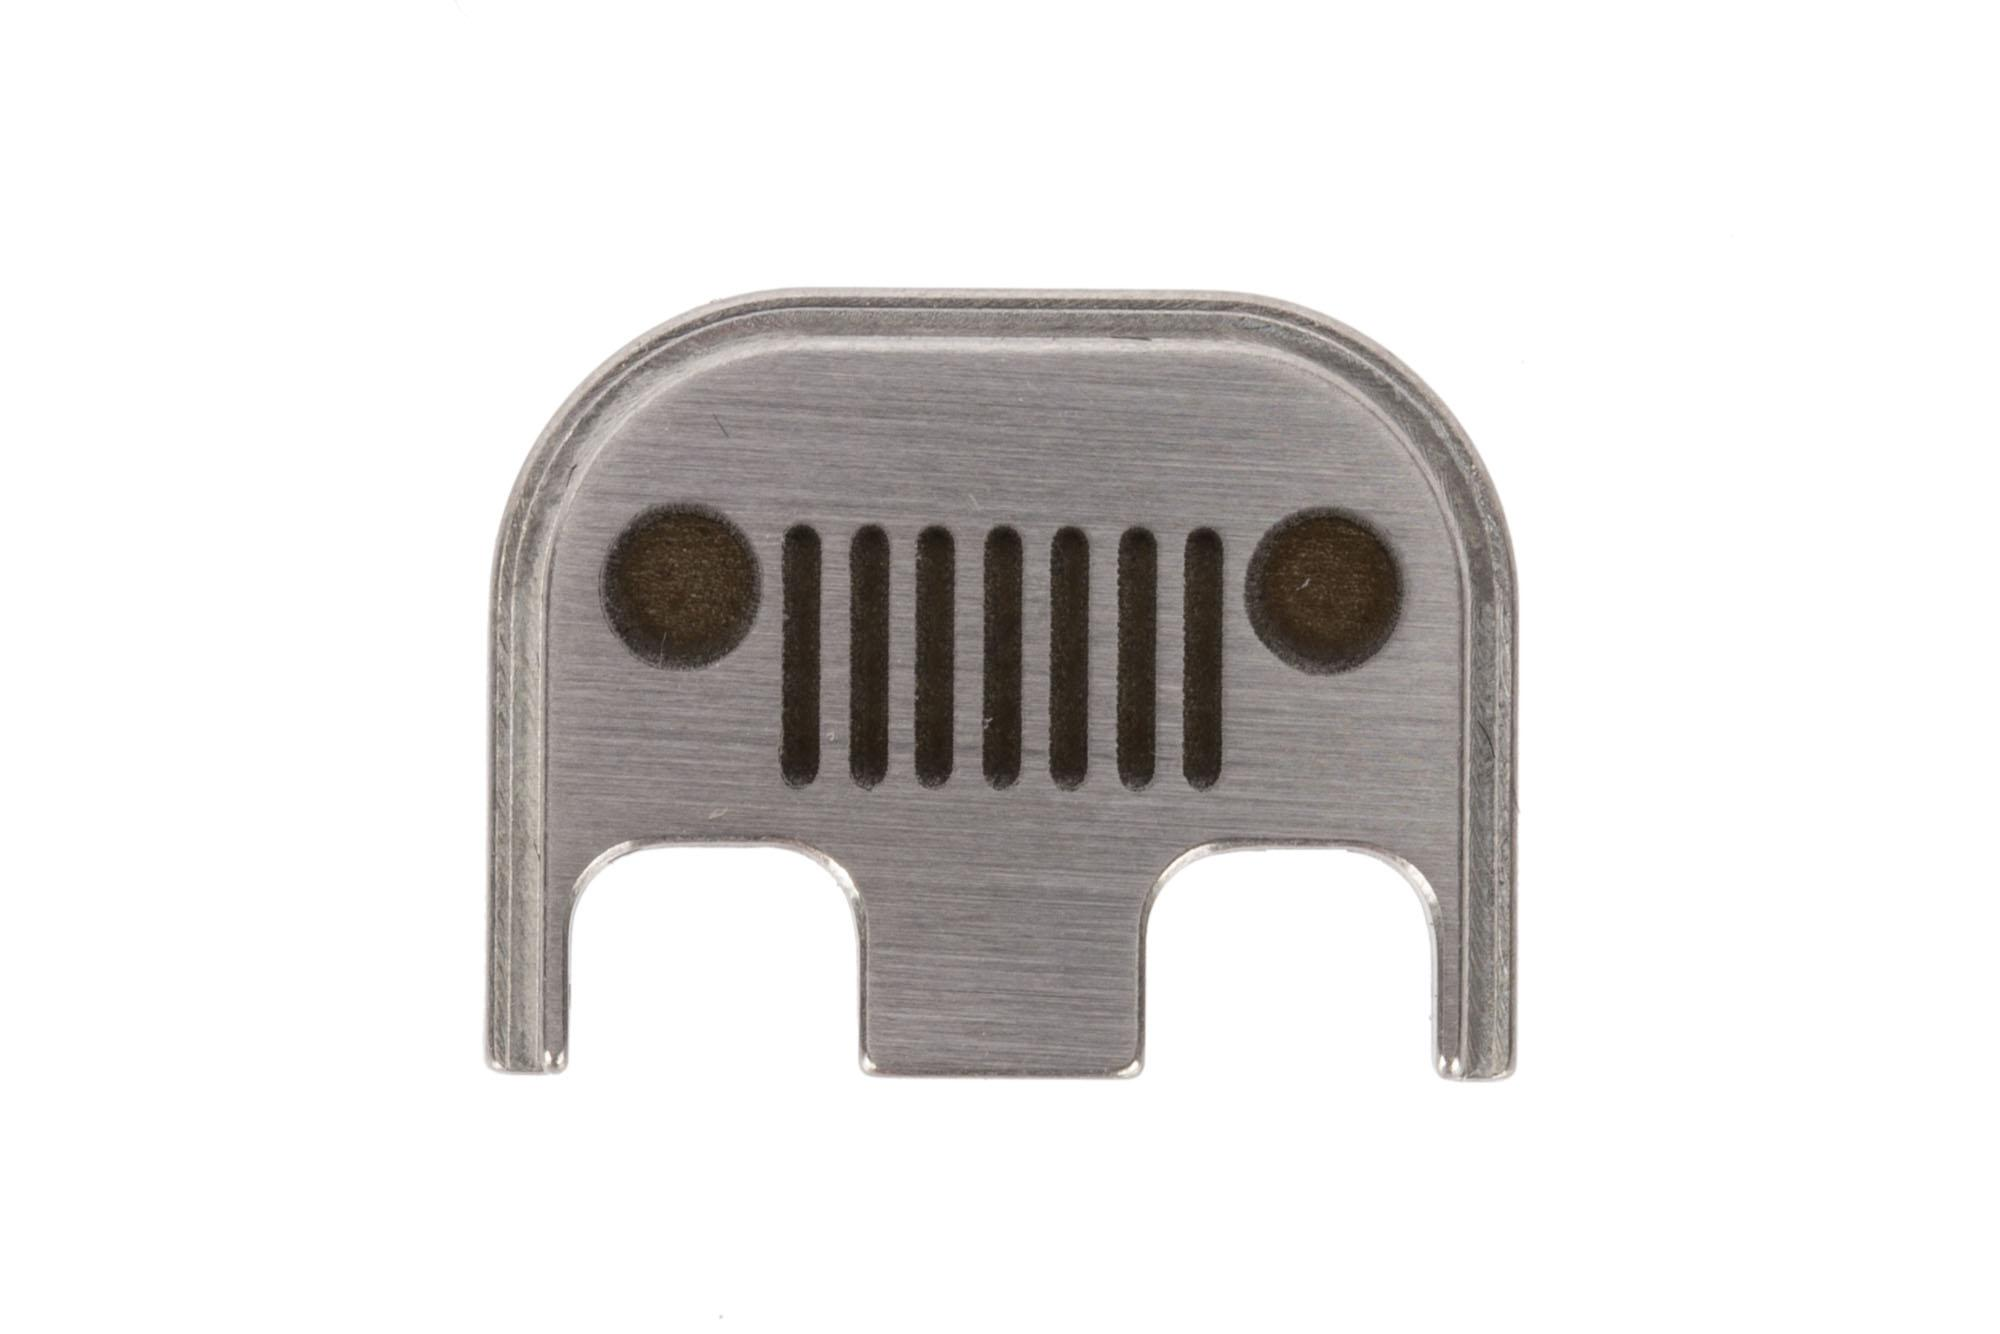 Classy Raptor Tactical Off Road Standard Stainless Steel Glock Back Plate - Brushed